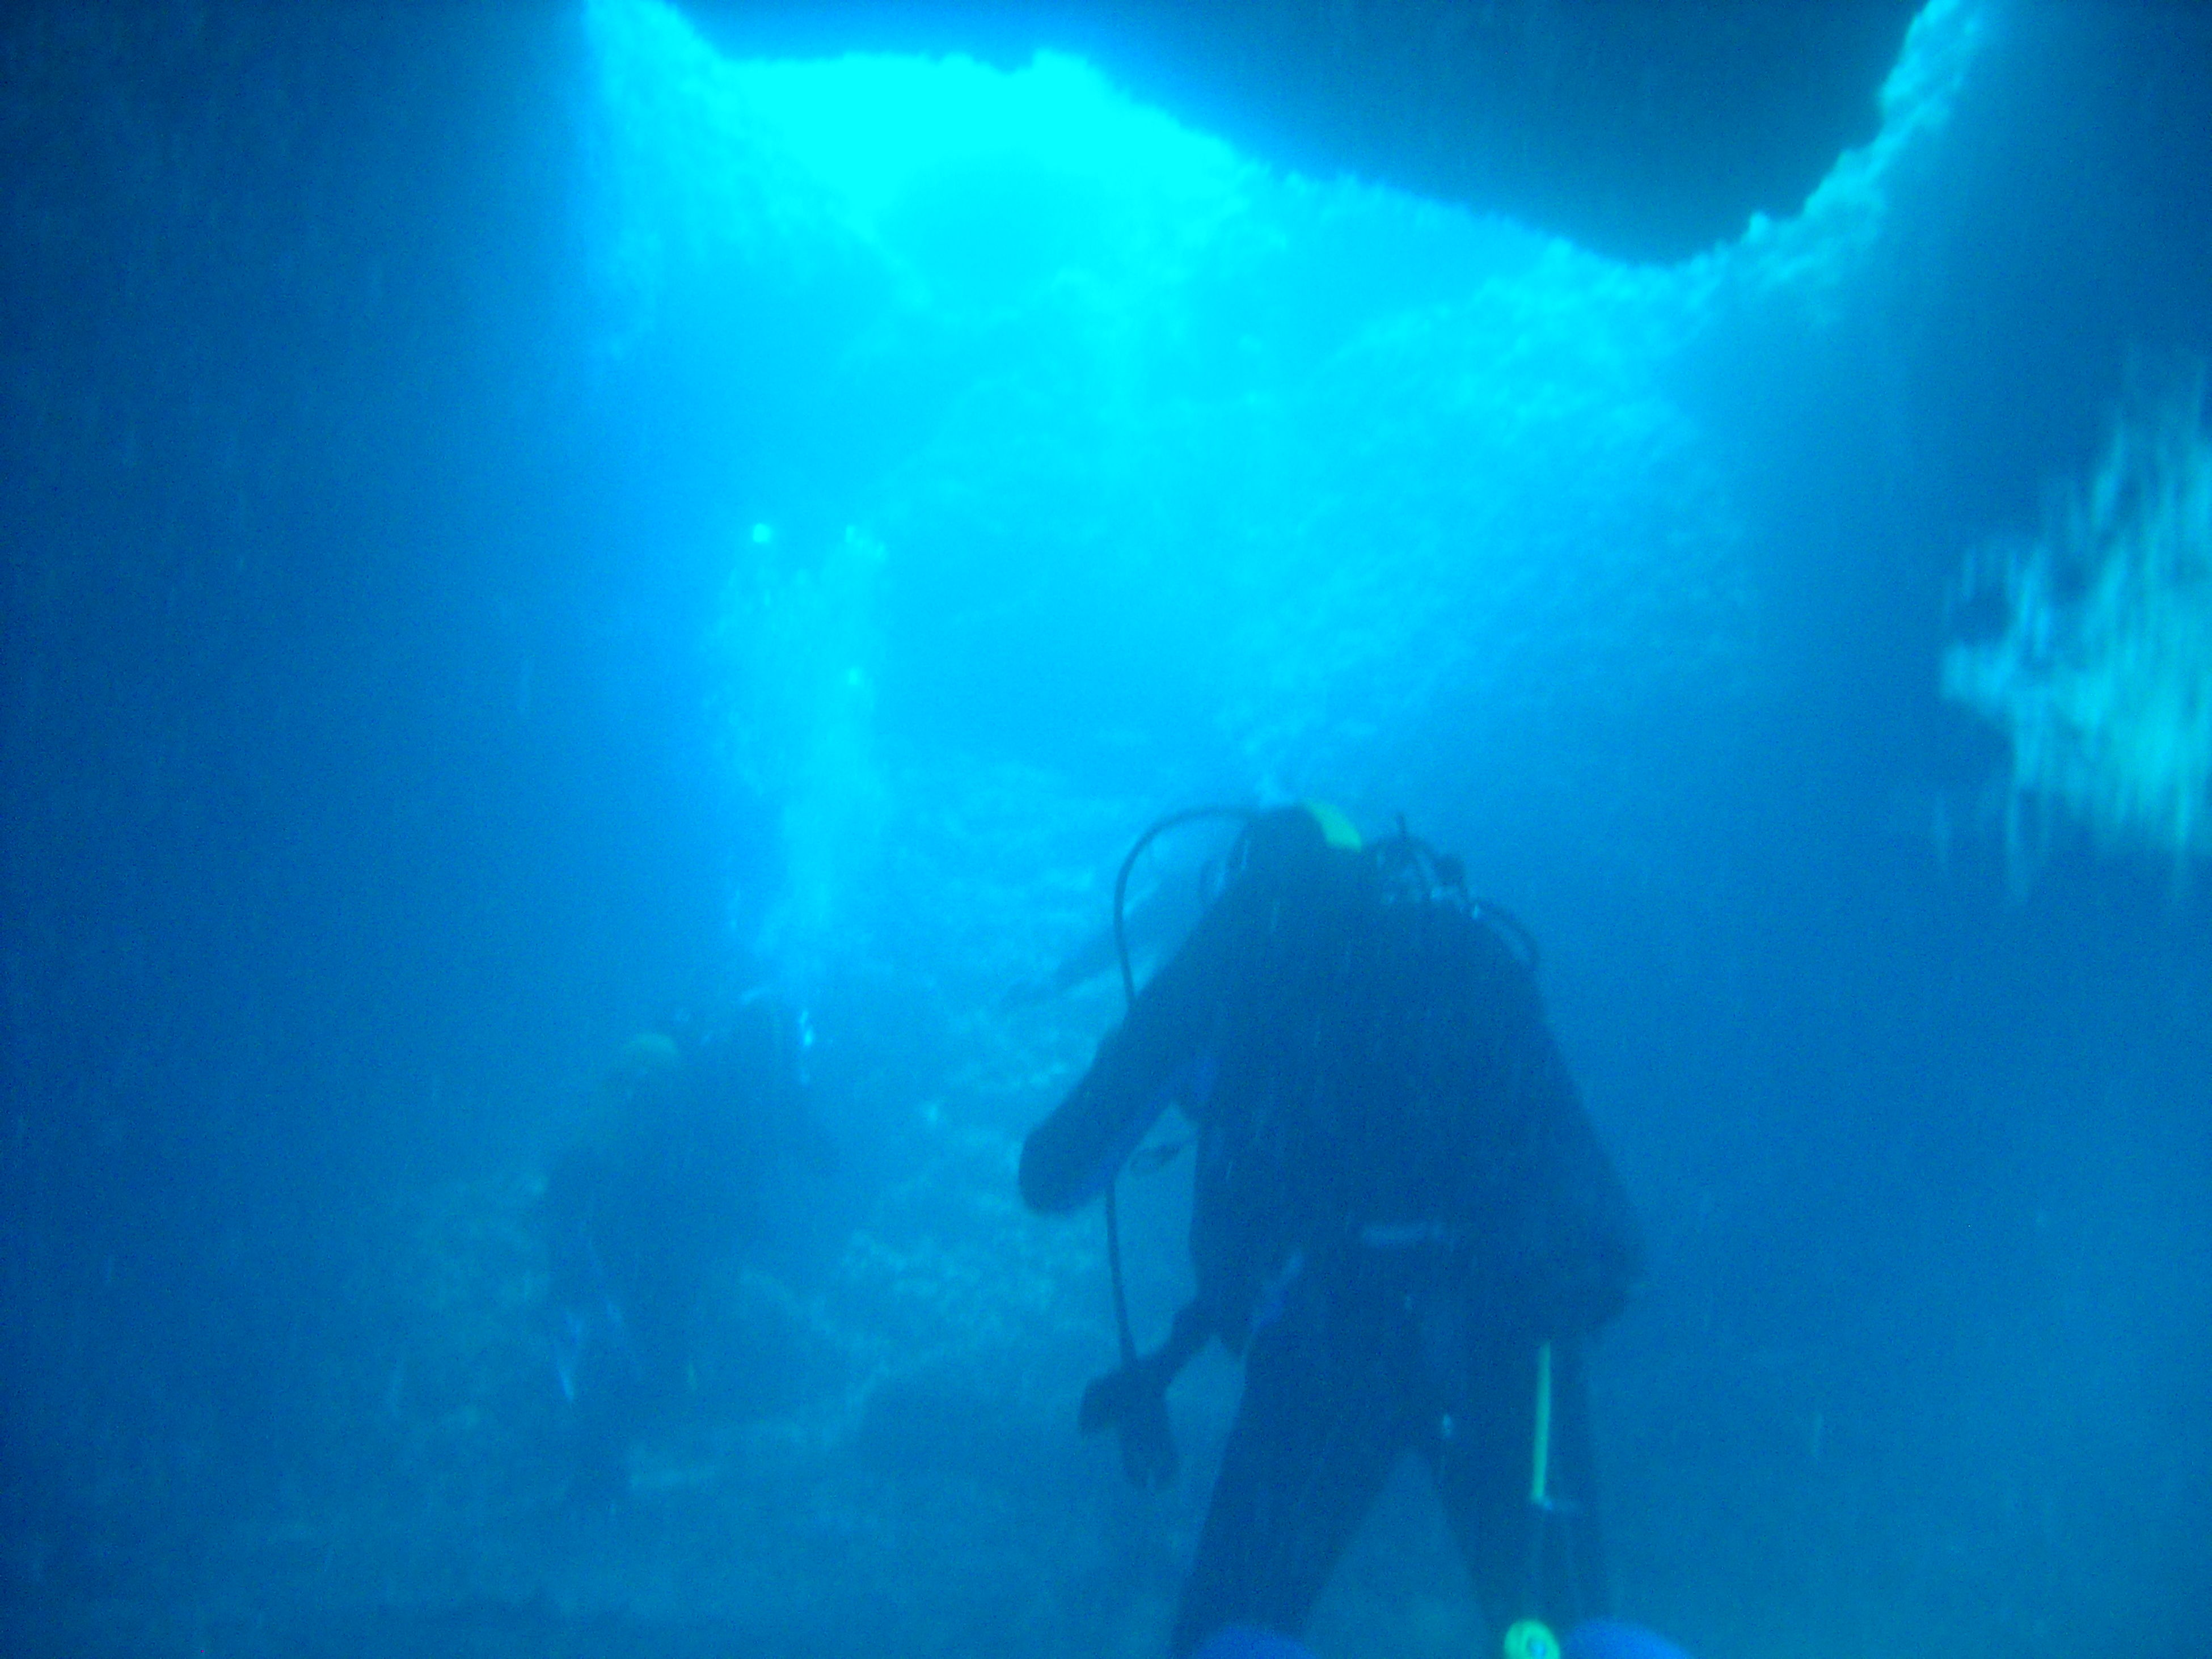 blue, underwater, leisure activity, lifestyles, illuminated, night, undersea, men, low angle view, swimming, silhouette, enjoyment, sky, arts culture and entertainment, light - natural phenomenon, fun, exploration, unrecognizable person, indoors